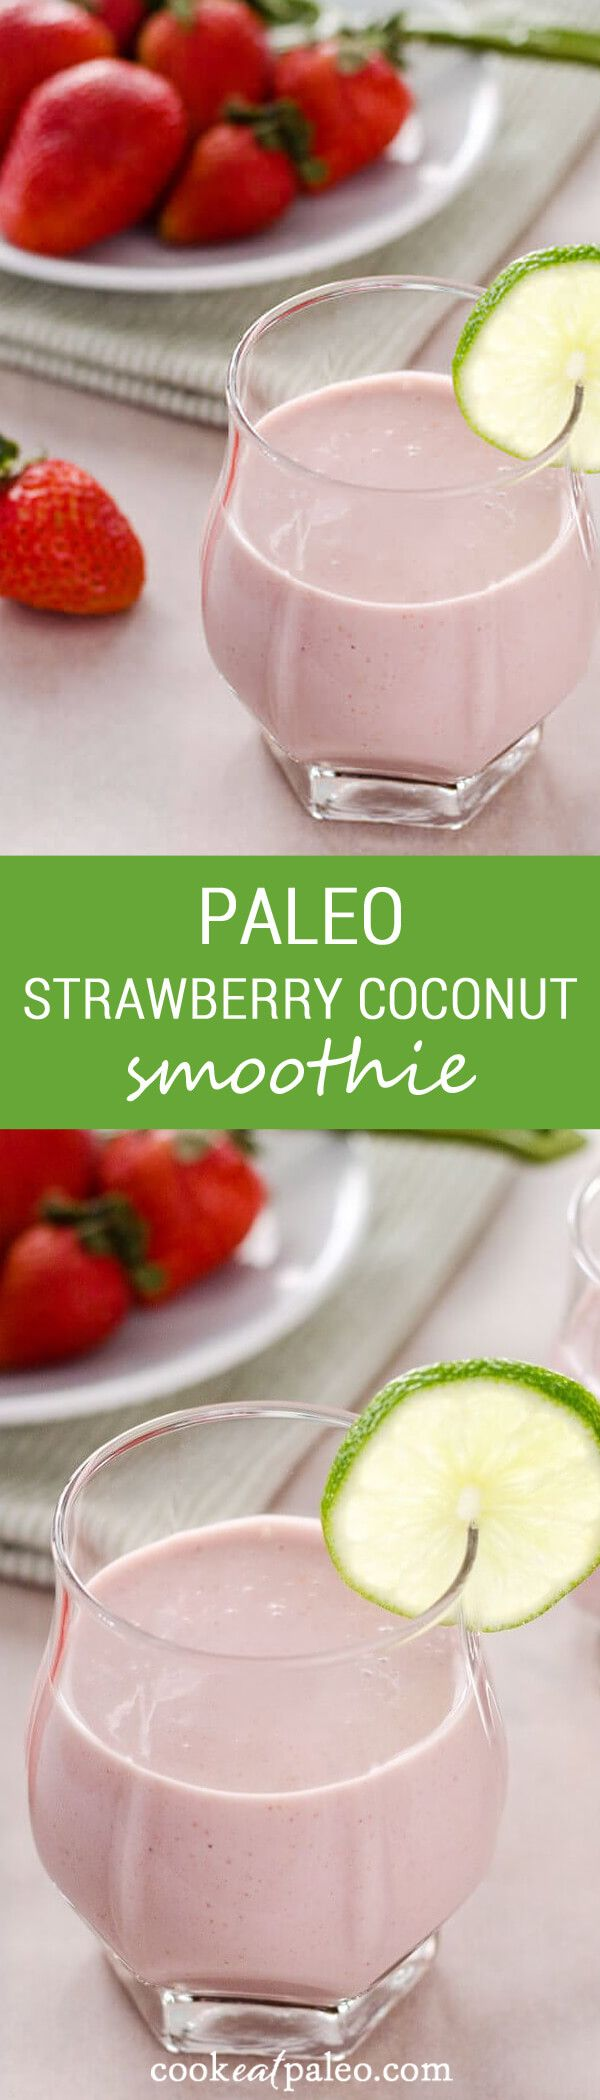 This paleo strawberry coconut smoothie is sweet and creamy with no added sugar or dairy. Perfect for breakfast or a snack. ~ http://cookeatpaleo.com